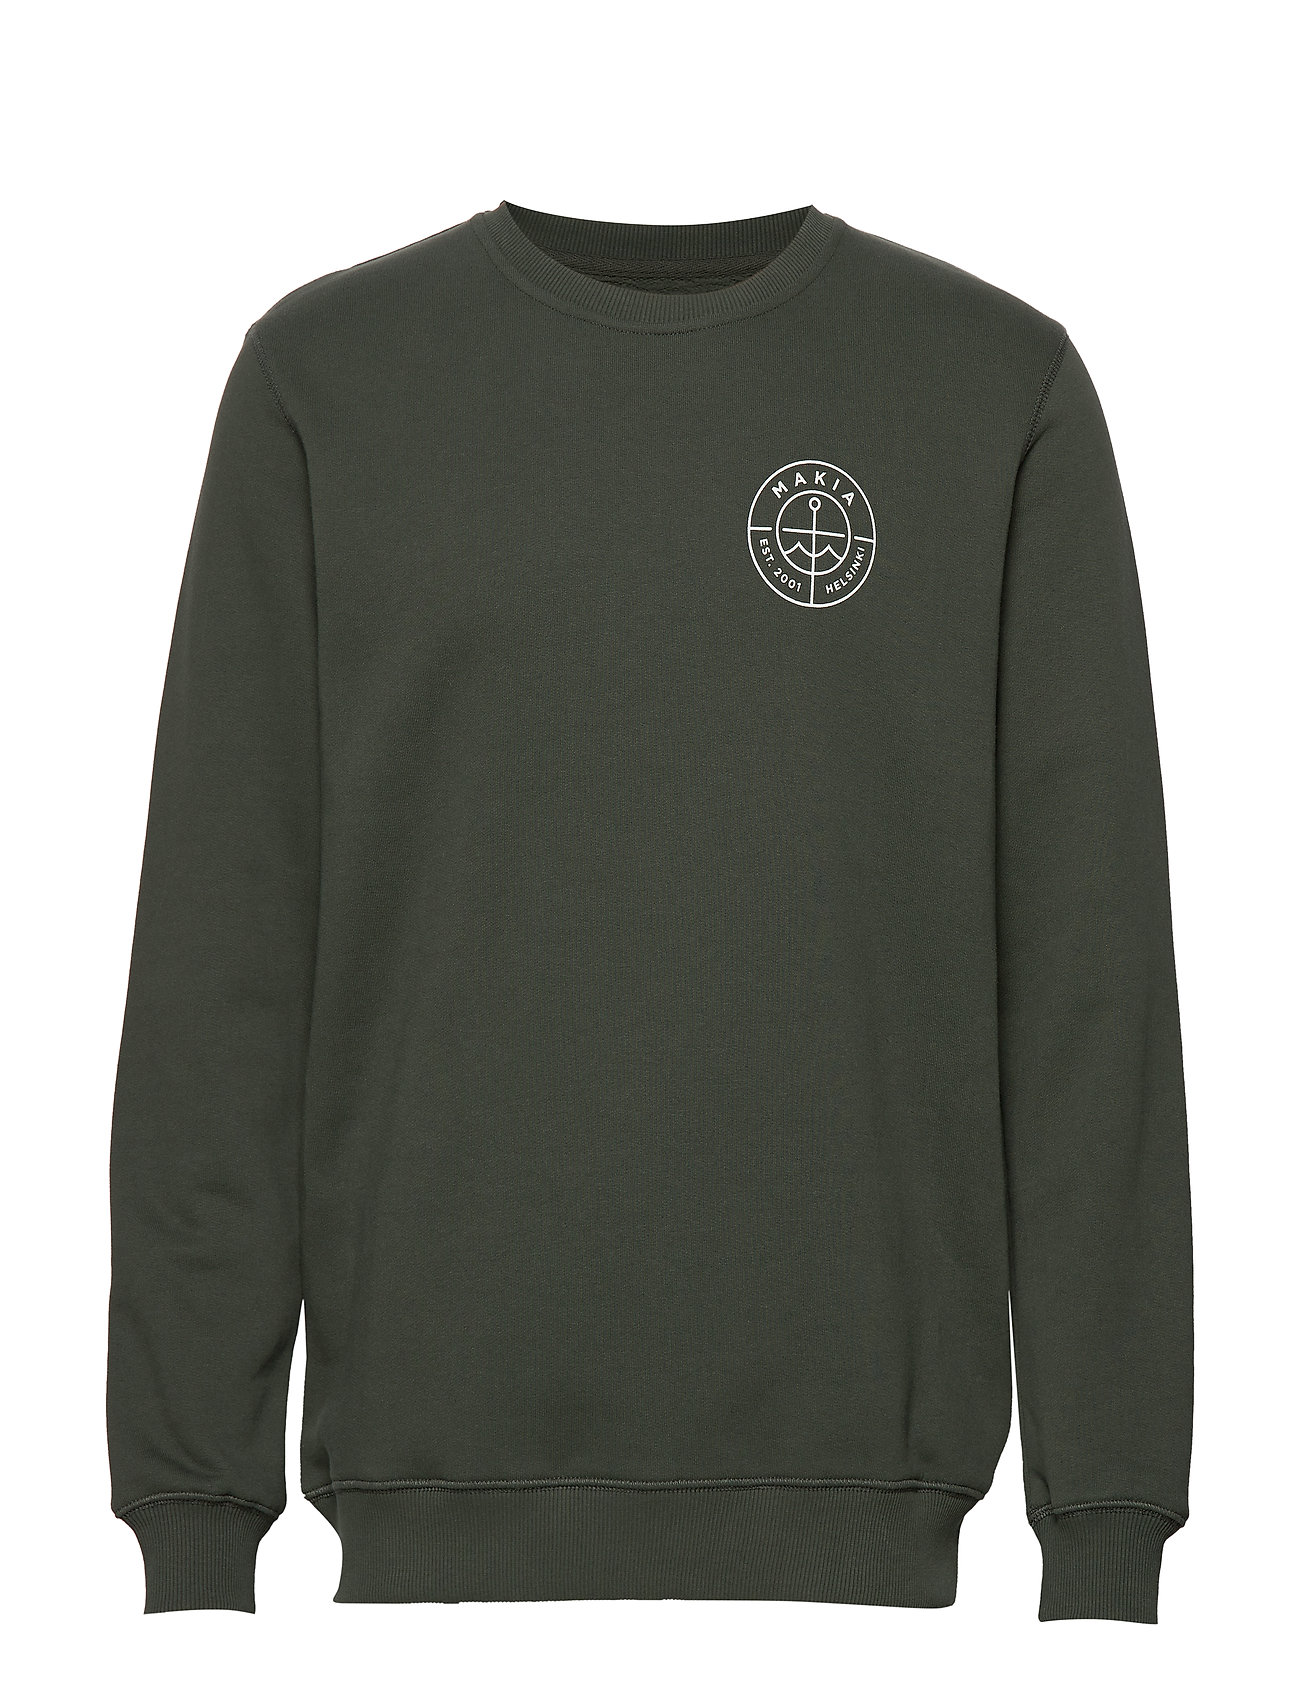 Makia Range Sweatshirt - DARK GREEN